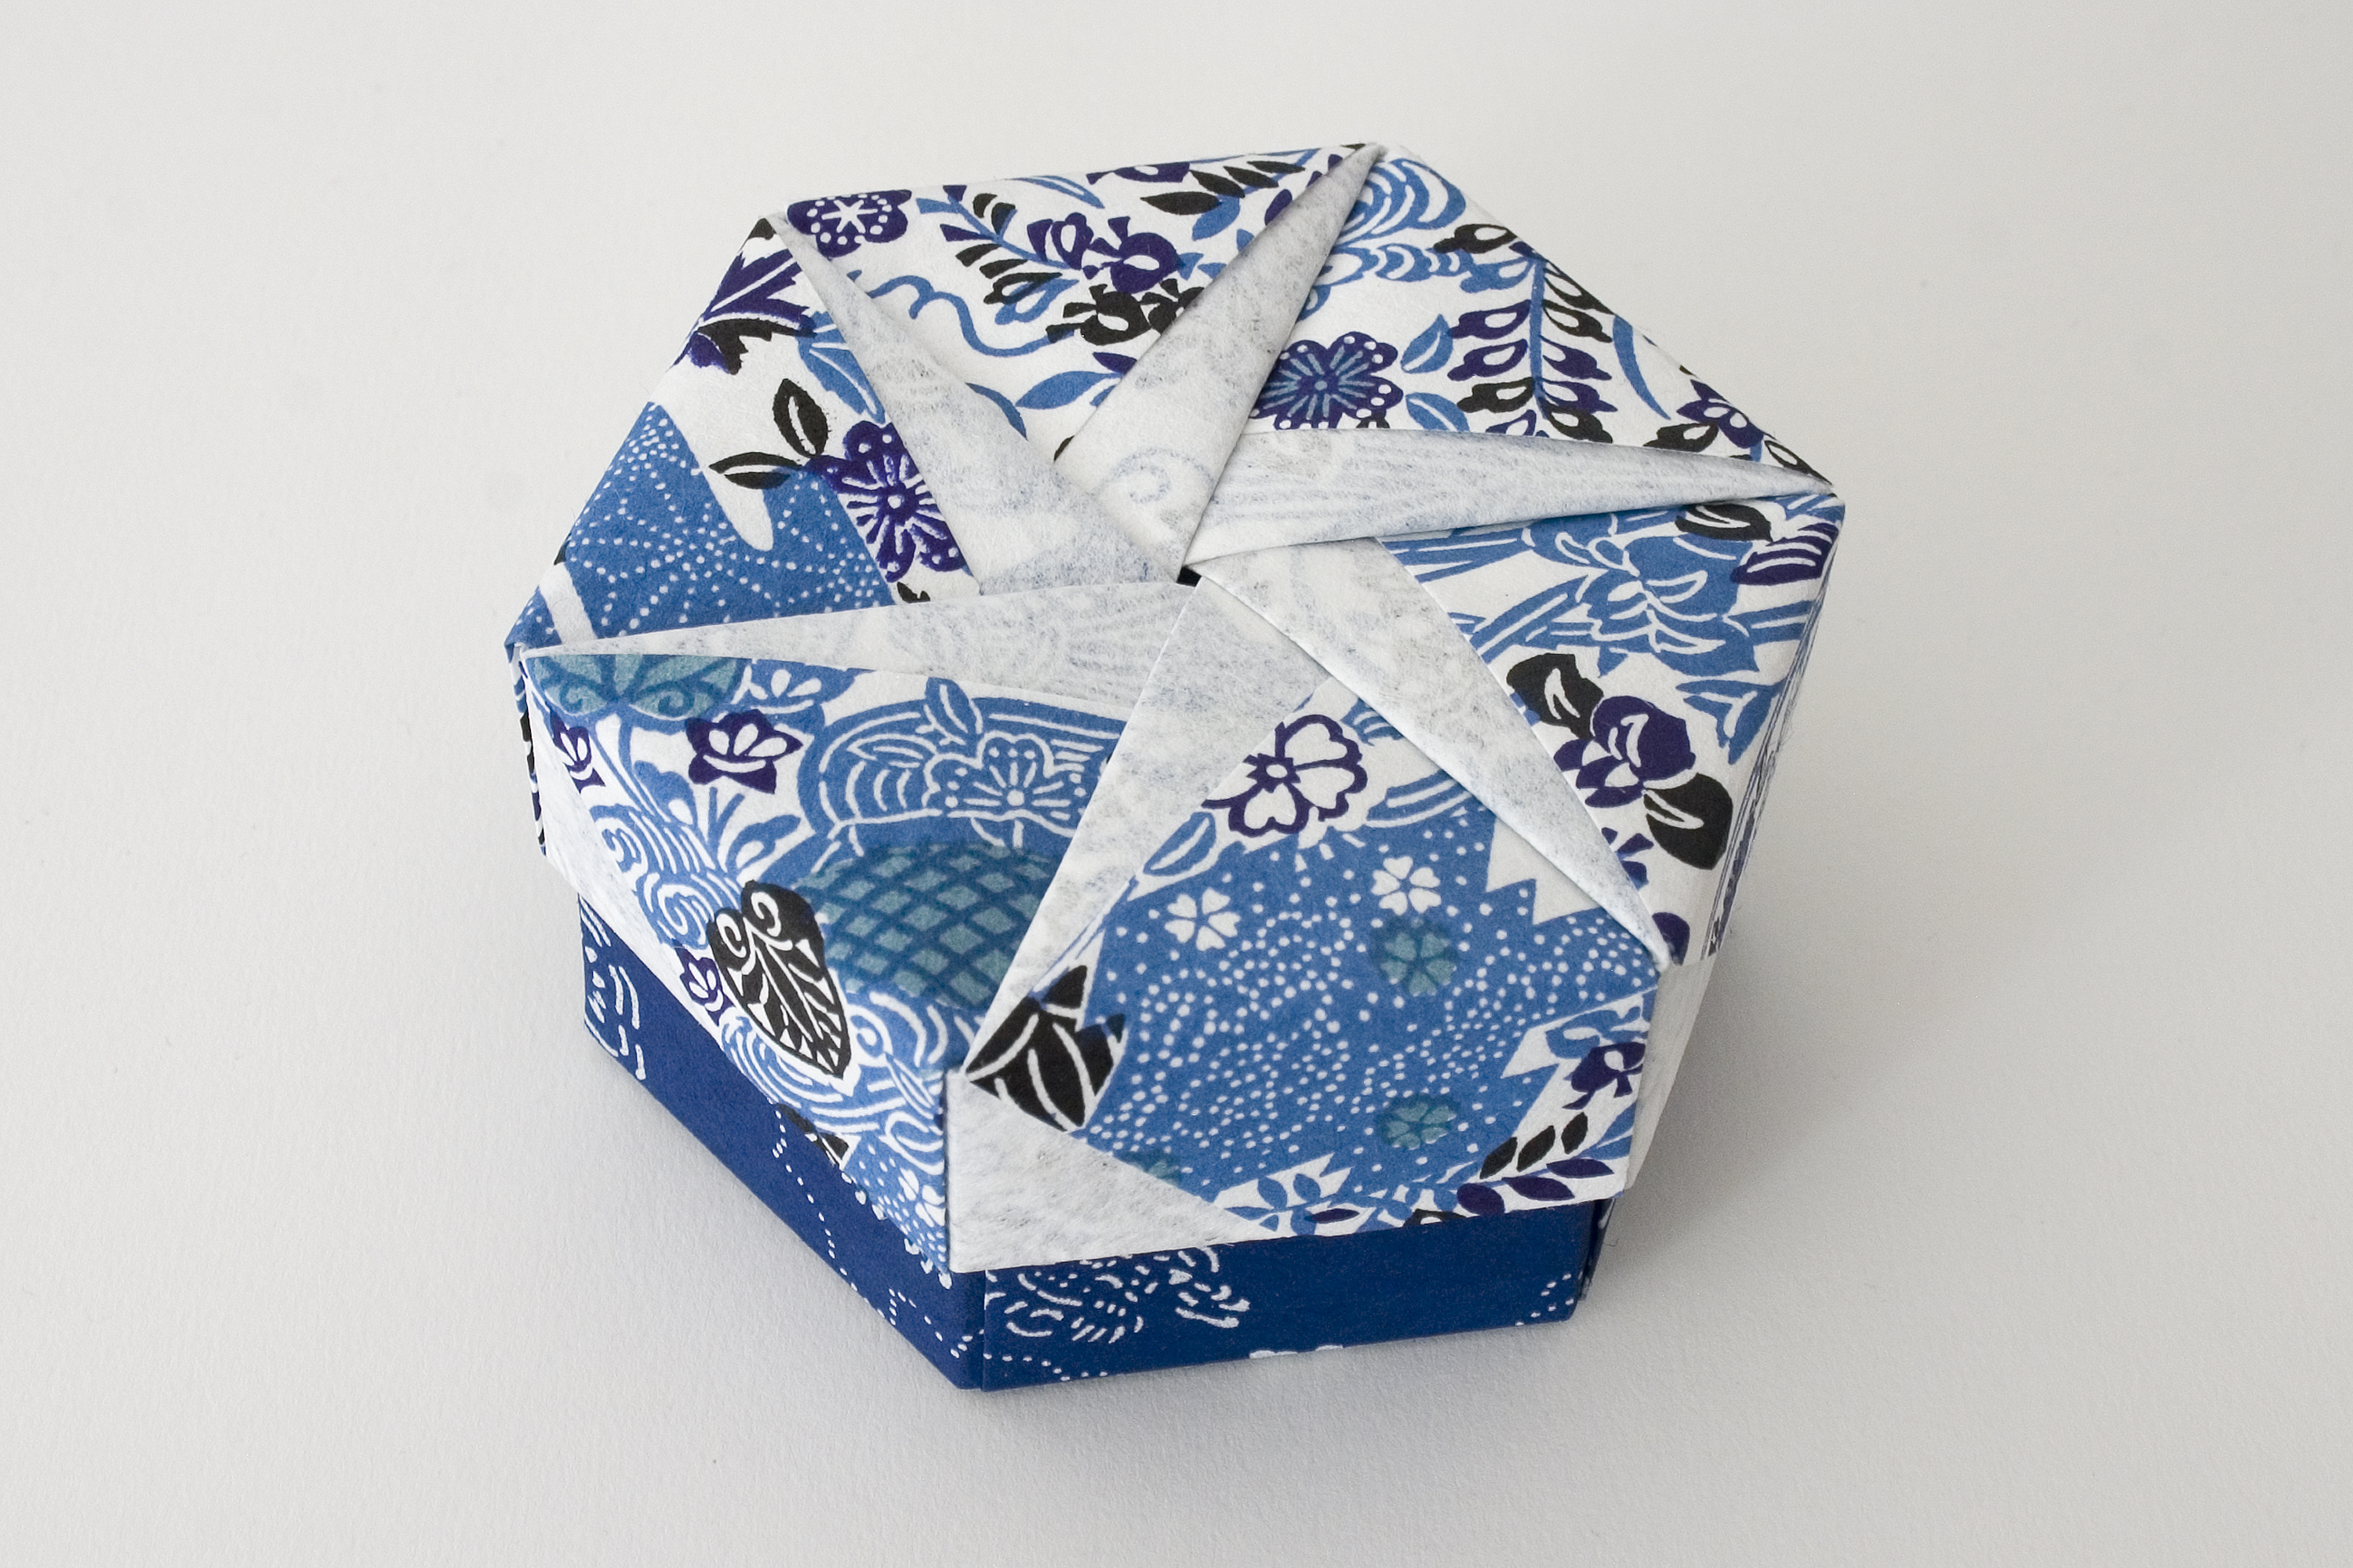 Hexagonal Origami Box with Lid #19 | Flickr - Photo Sharing! - photo#38